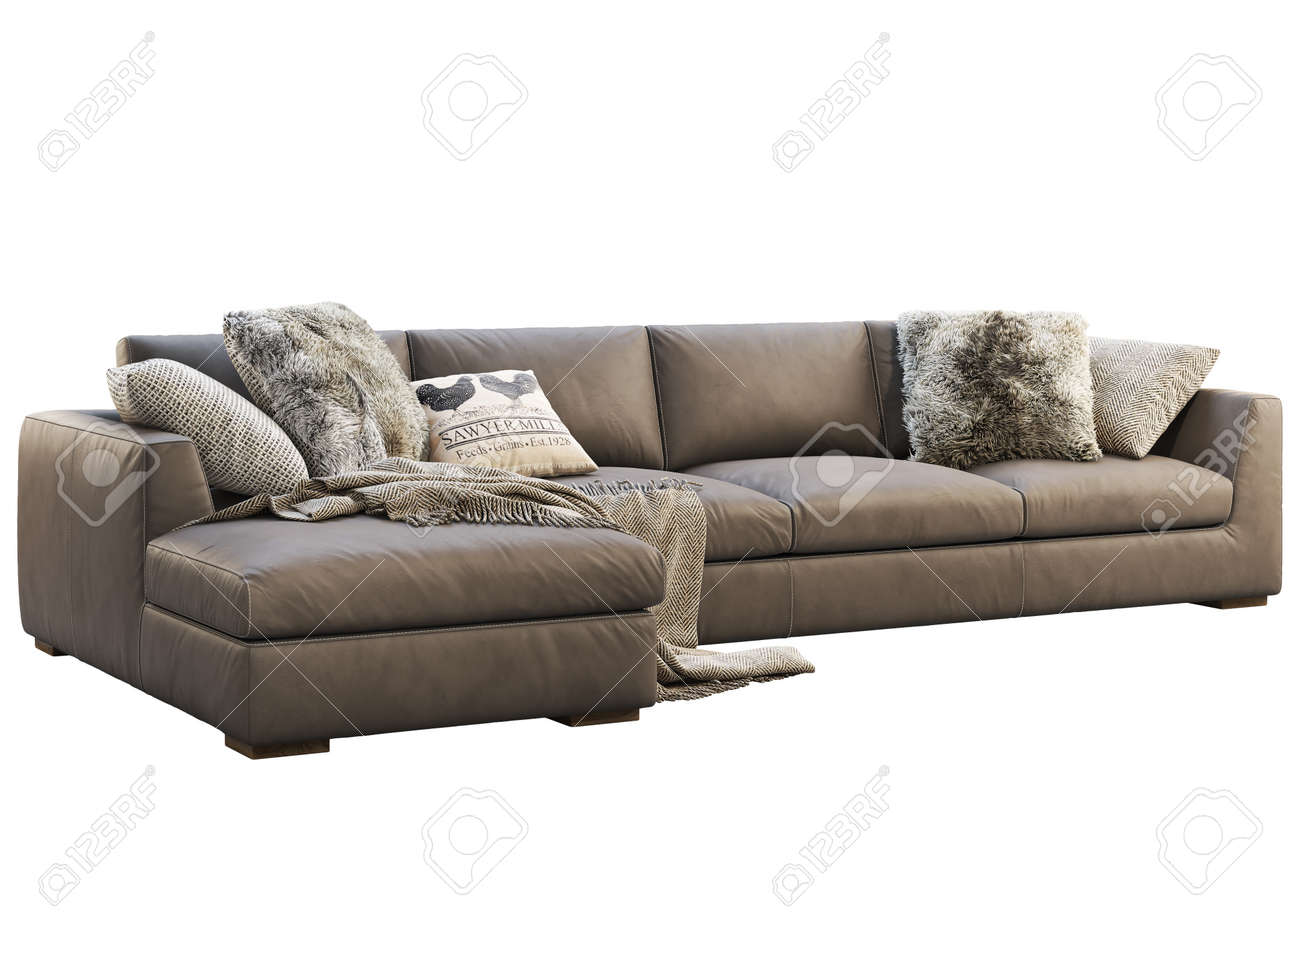 Chalet Modular Leather Sofa With Chaise Lounge Leather Upholstery Stock Photo Picture And Royalty Free Image Image 138175018